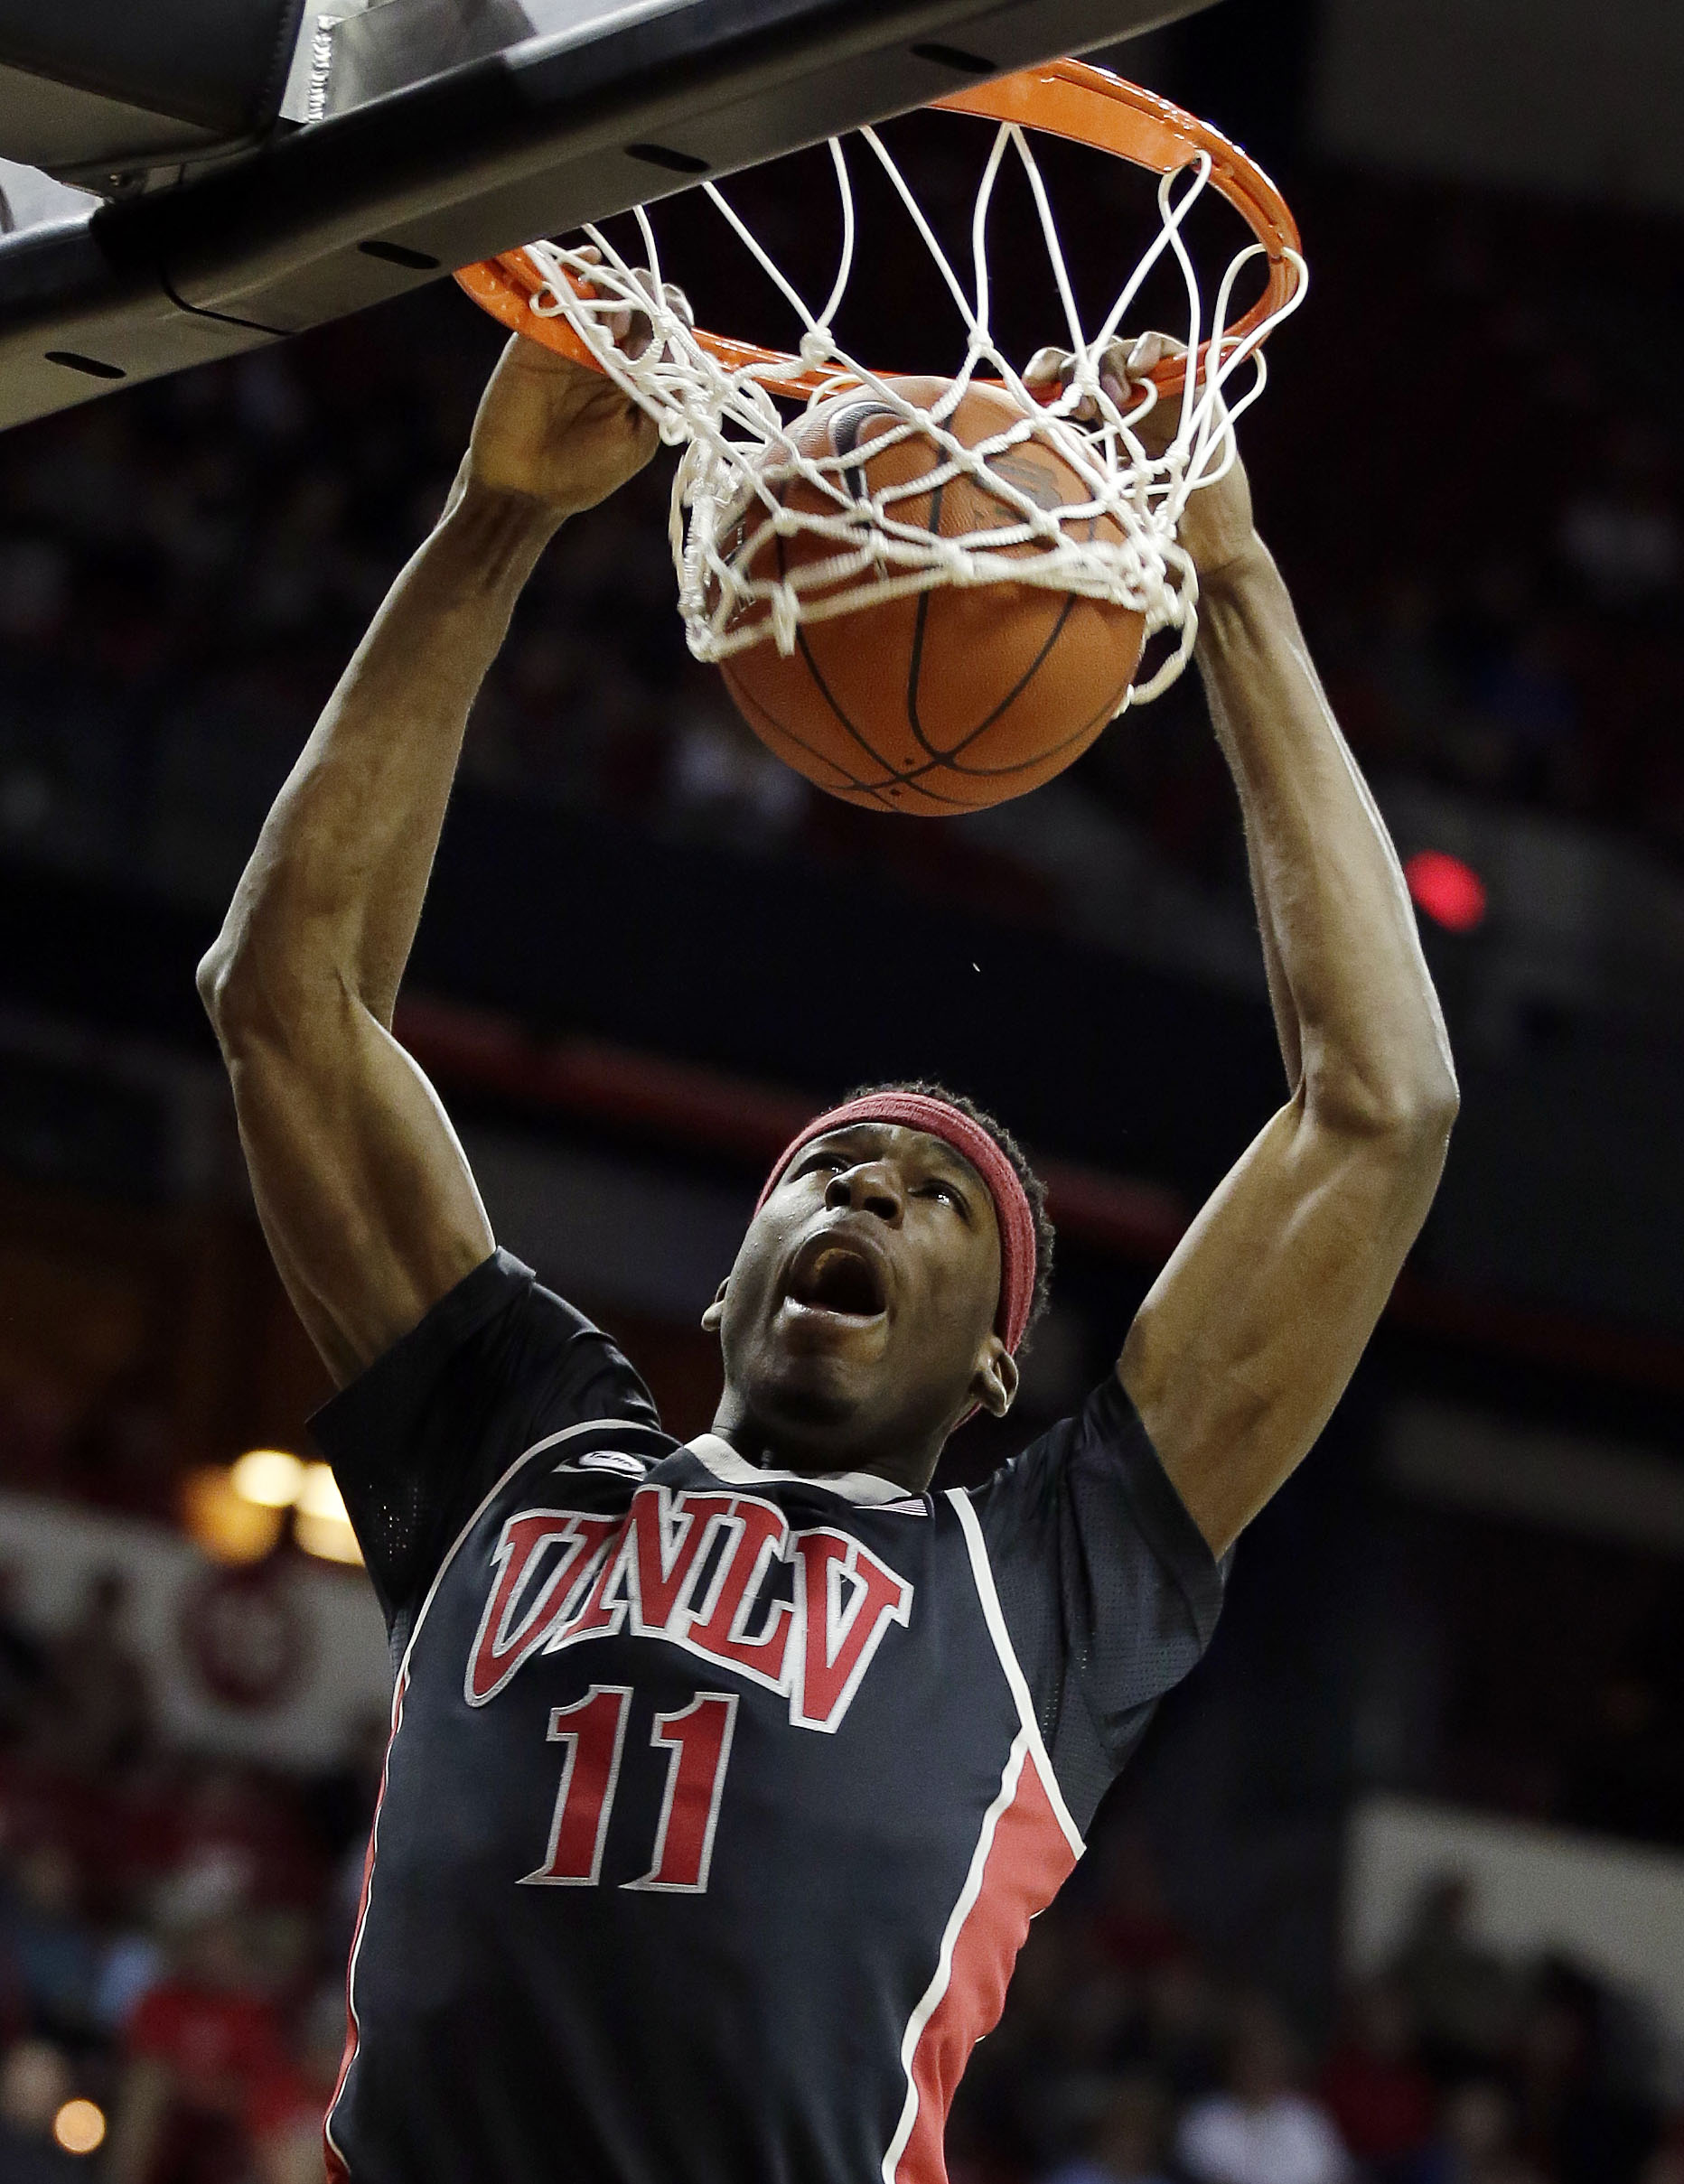 Boston native Goodluck Okonoboh is one of many UNLV players hailing from the East Coast. (AP)